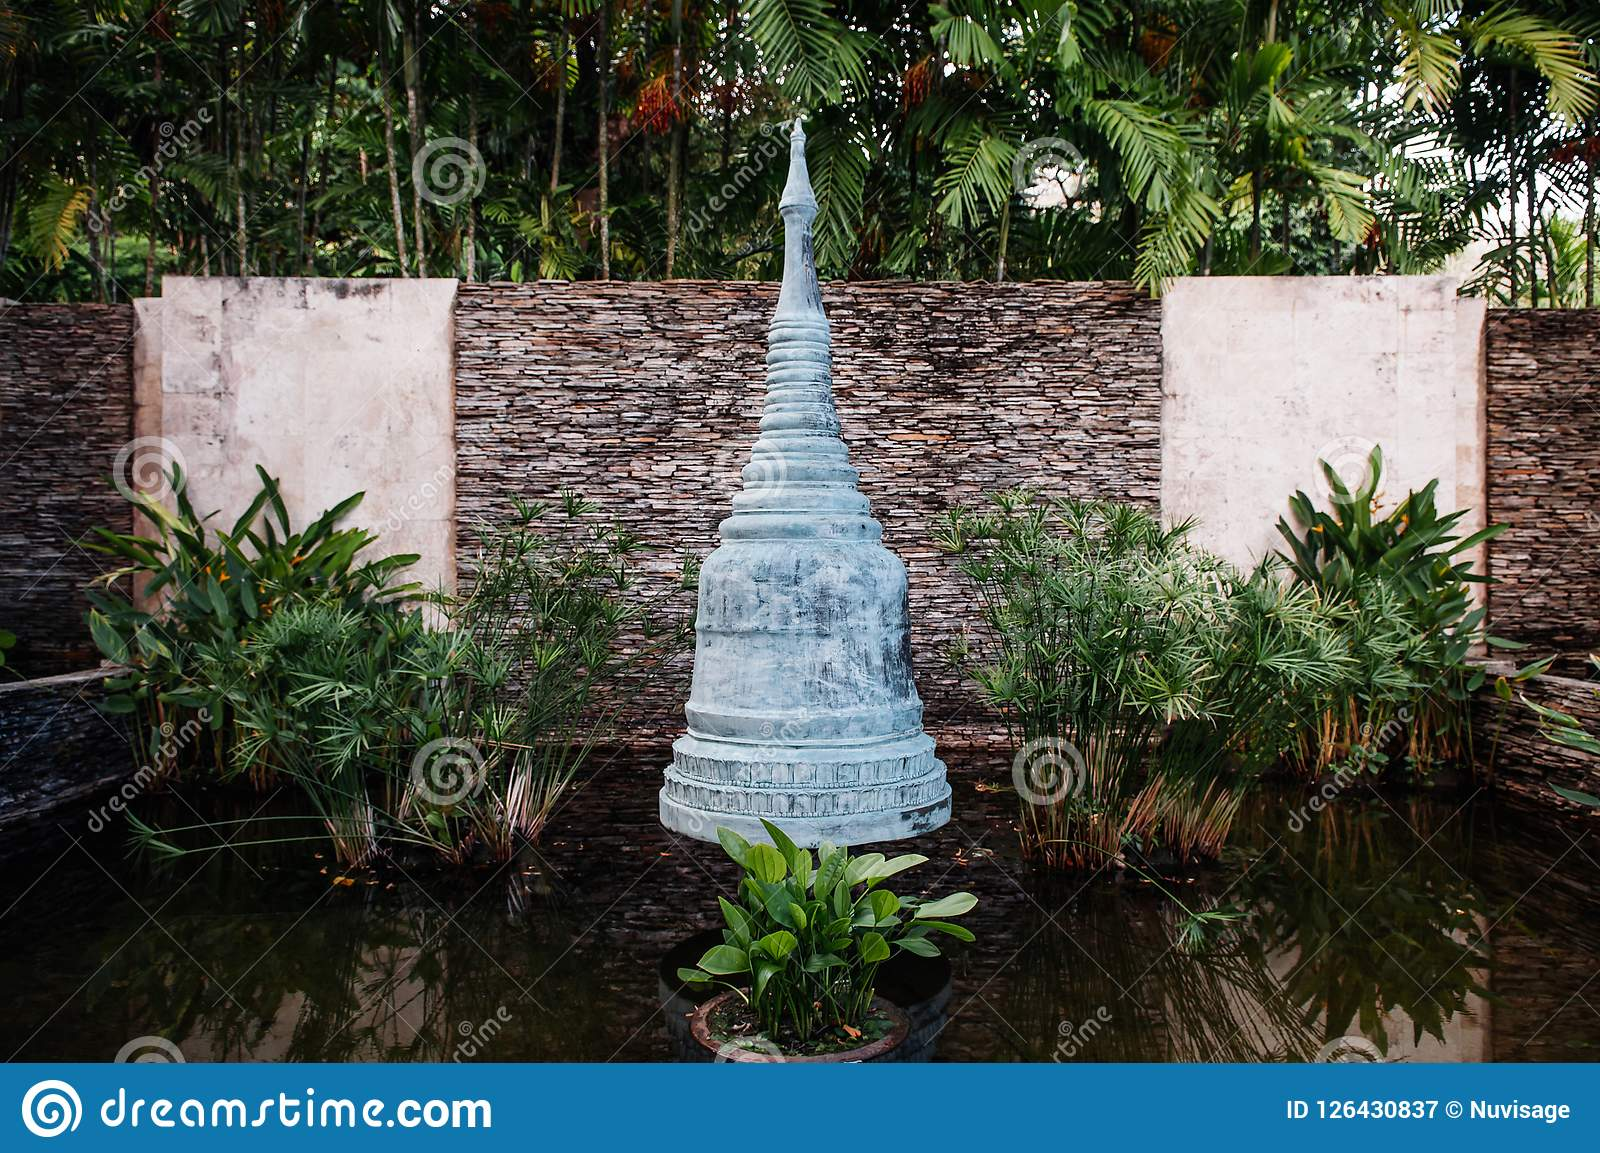 Bronze Pagoda Sculpture In Water Pond Thai Garden Landscape